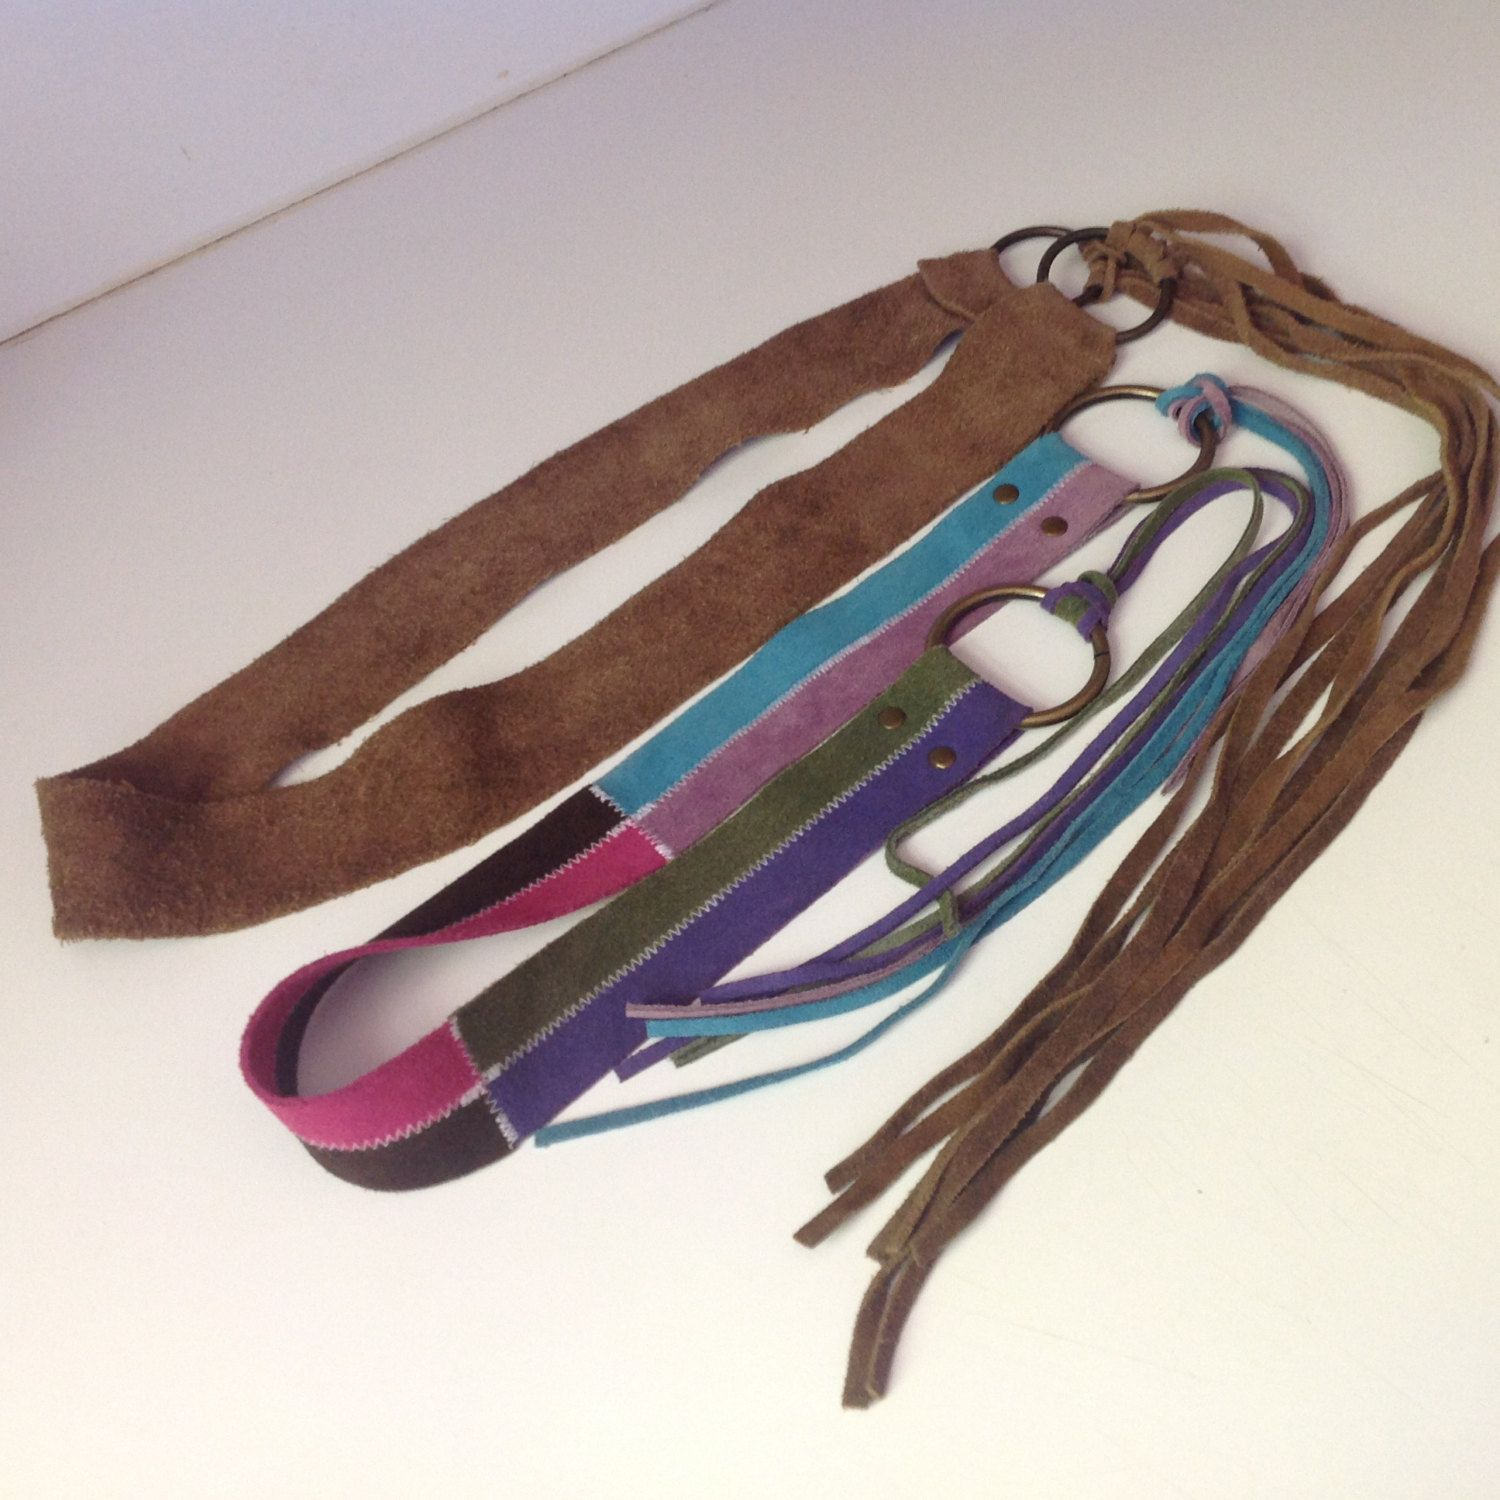 Leather tie belt - brown or multi-colored by Mywaycrochet on Etsy